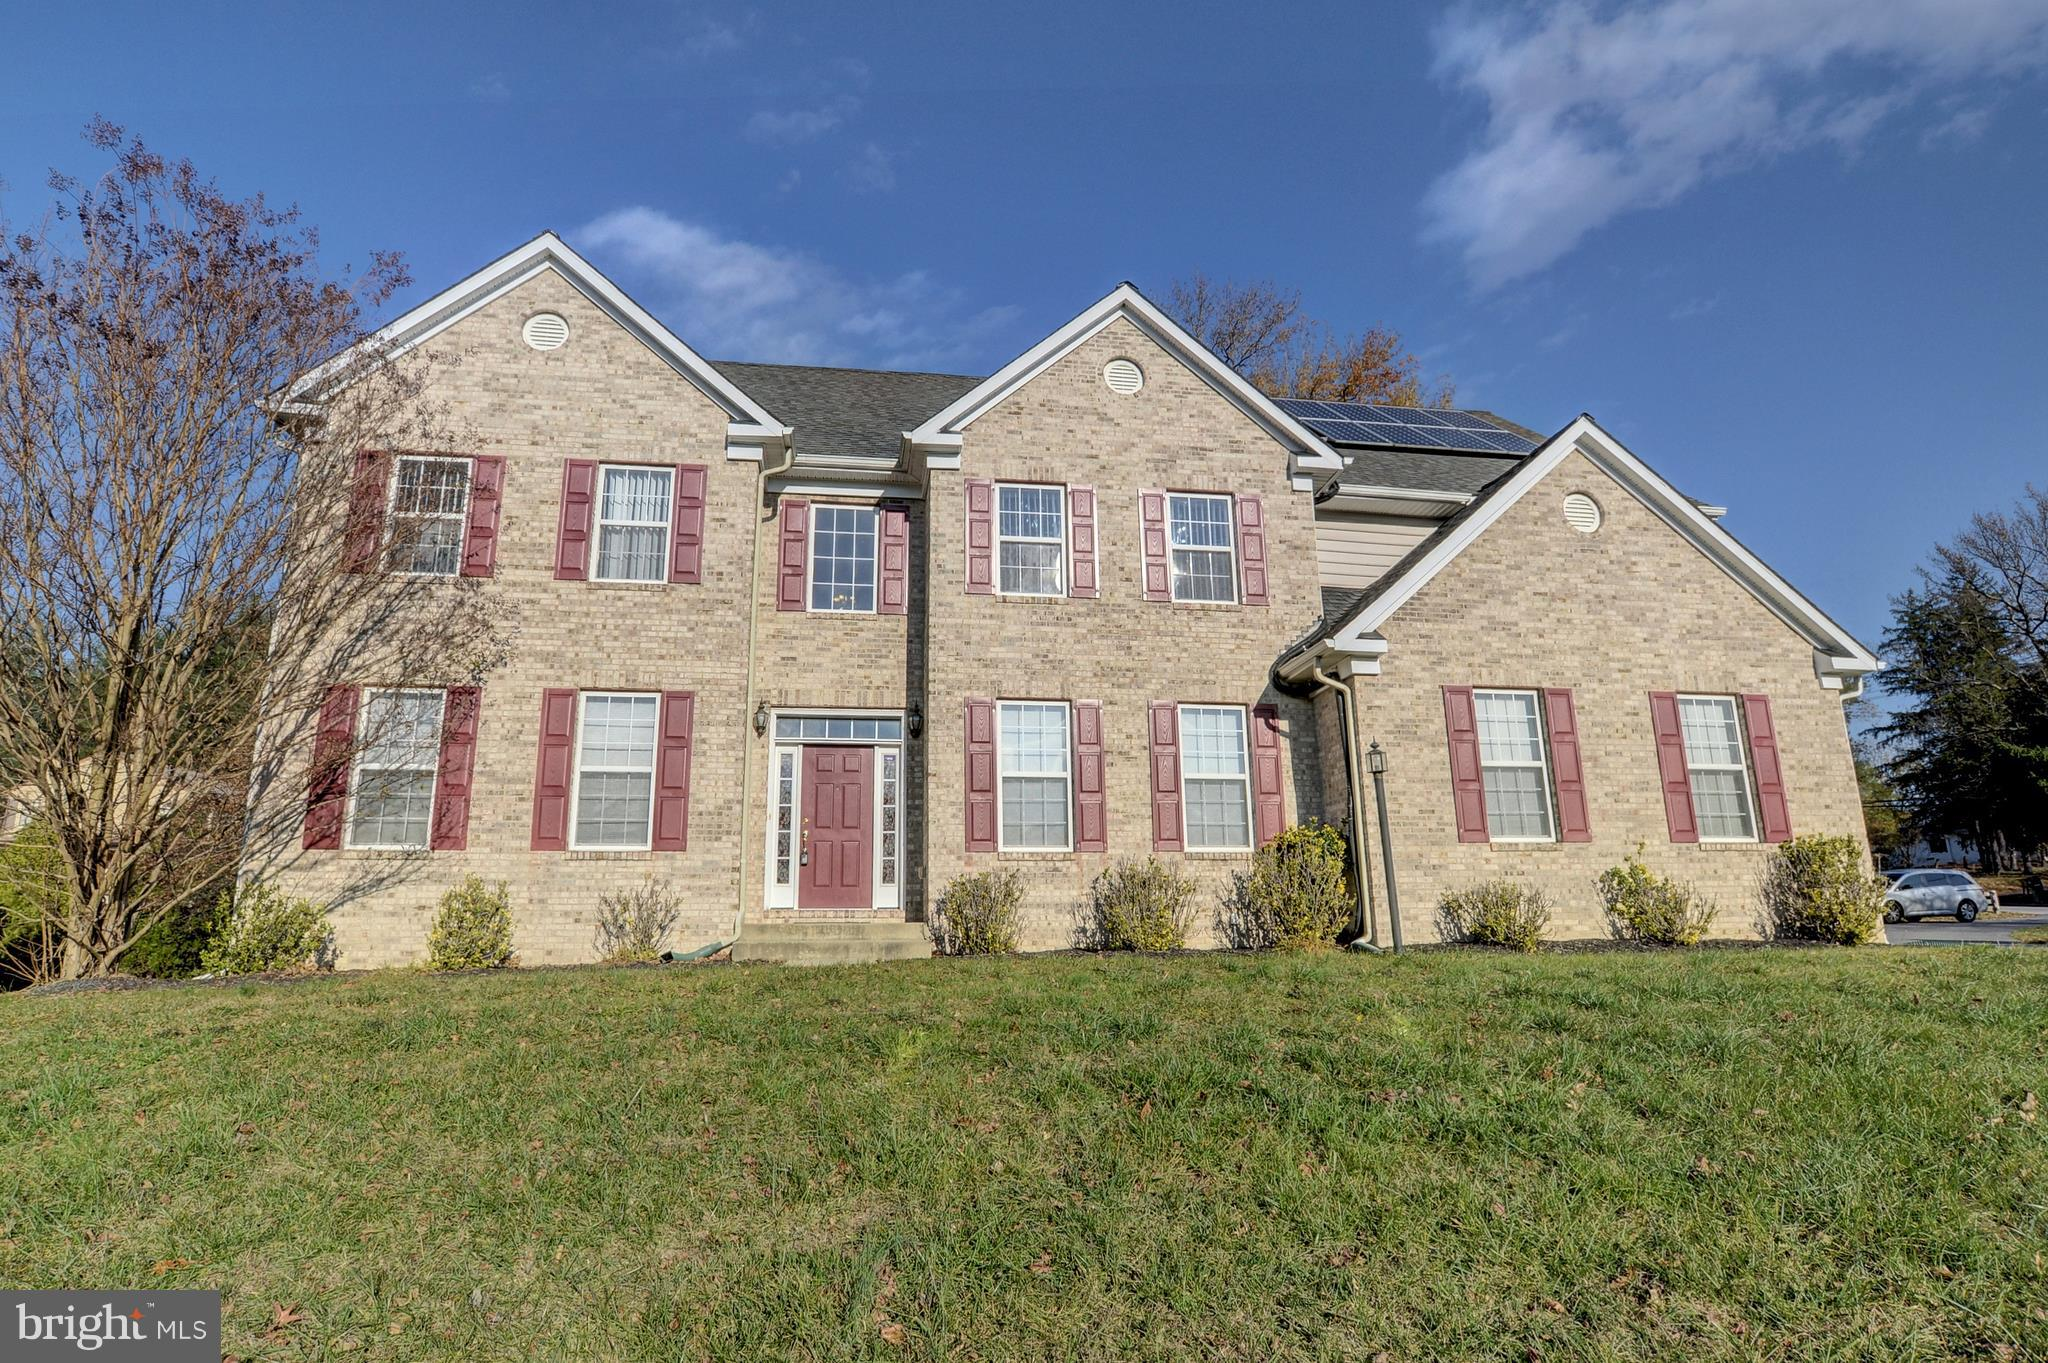 12310 LANHAM SEVERN ROAD, BOWIE, MD 20720